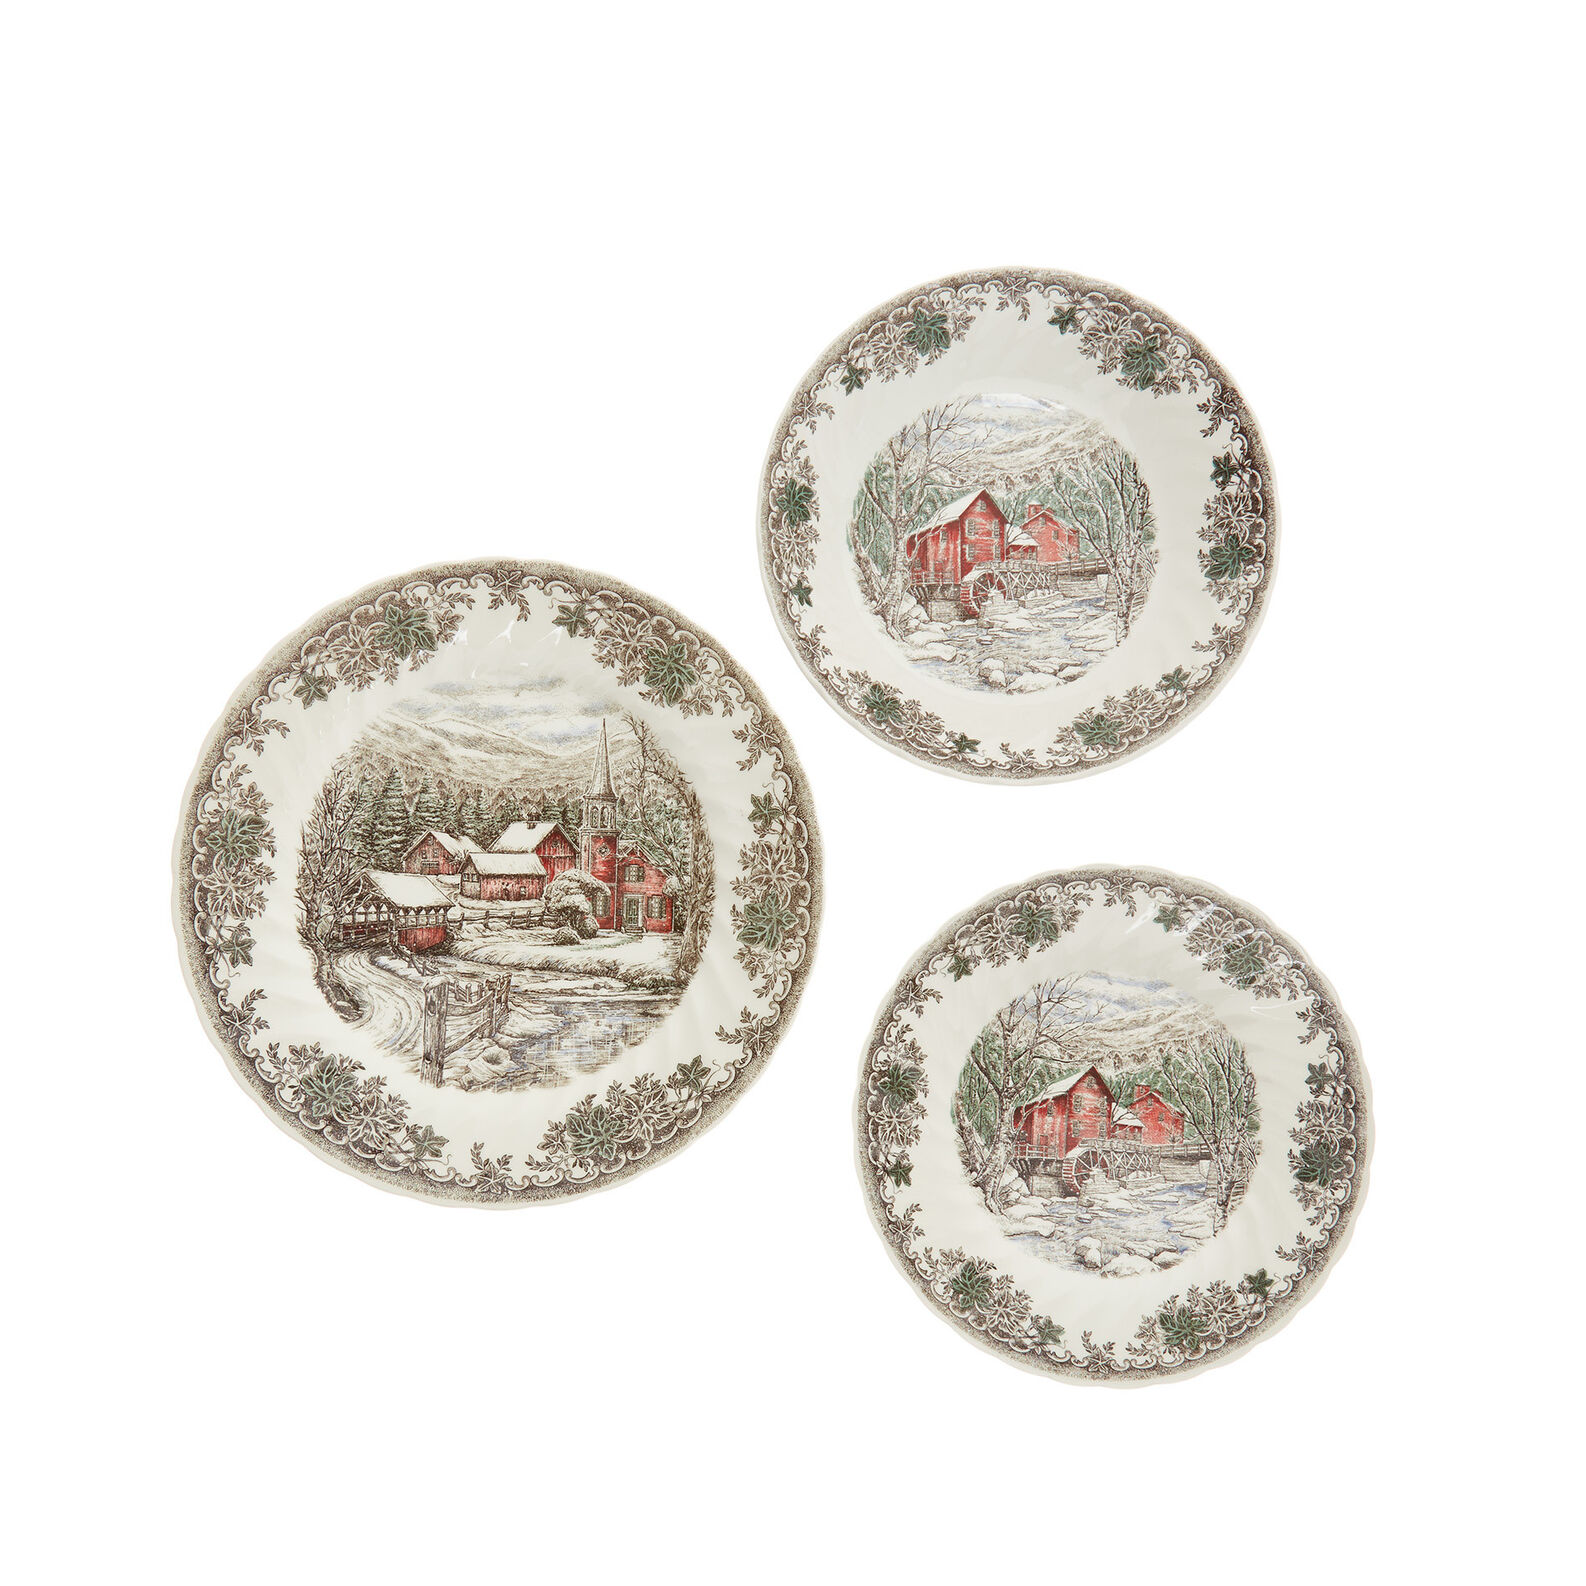 Churchill set of 18 ceramic plates with country village motif